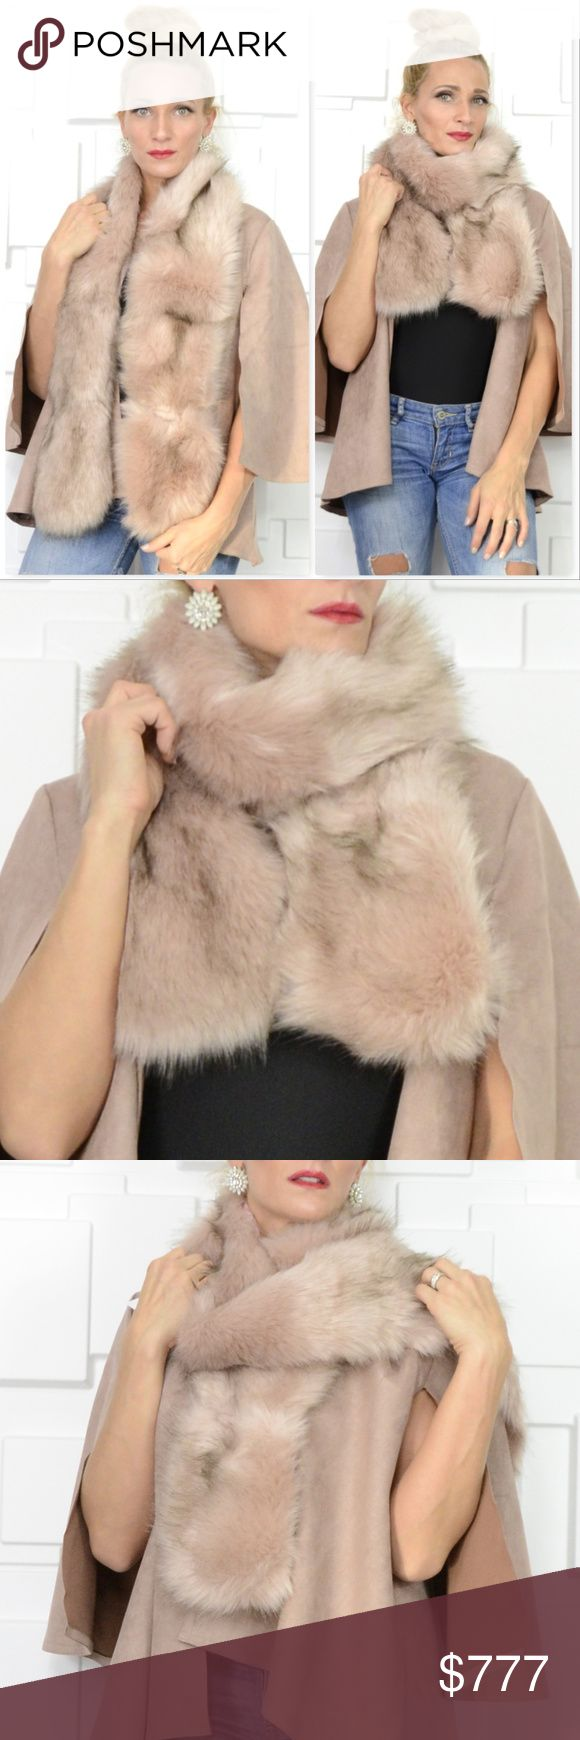 BLUSH PINK FAUX FUR SCARF BRAND NEW  BOUTIQUE ITEM   Check out this stunning BLUSH PINK with hints of black on tips faux fur scarf!! It is out of this world!! Luxurious and soft faux fur, you will LOVE this piece! Make this the perfect gift for you or someone you love!   100% polyester Lined on back side. Can be worn many ways.  Also have a hook closure if you would like to hook it closed   *Christmas gift present holiday scarf scarves brand new high end anniversary vacation MODA ME COUTURE…